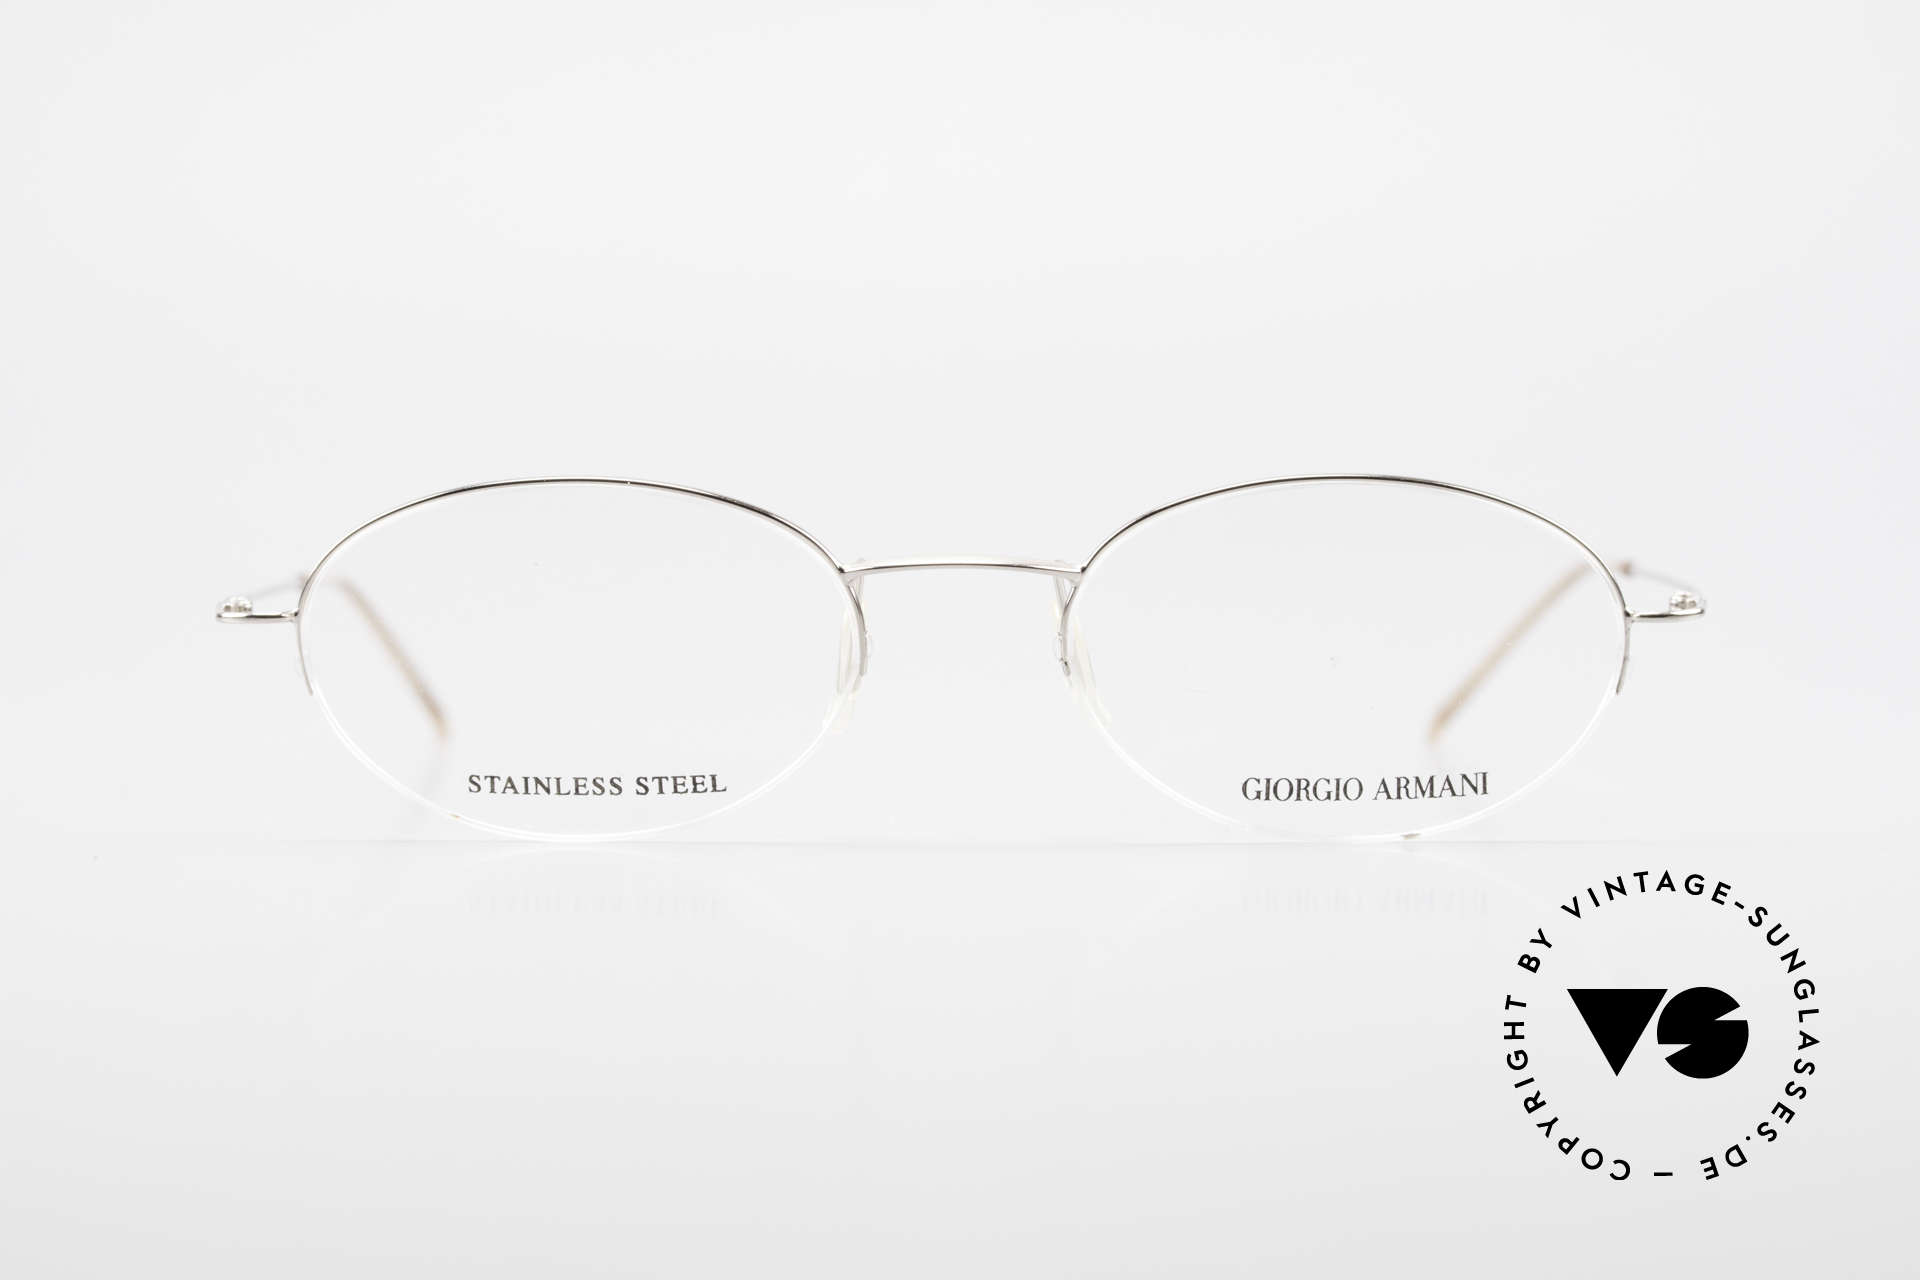 Giorgio Armani 26N Small Oval Eyeglasses Nylor, plain and puristic 'wire glasses' in a SMALL SIZE!, Made for Men and Women